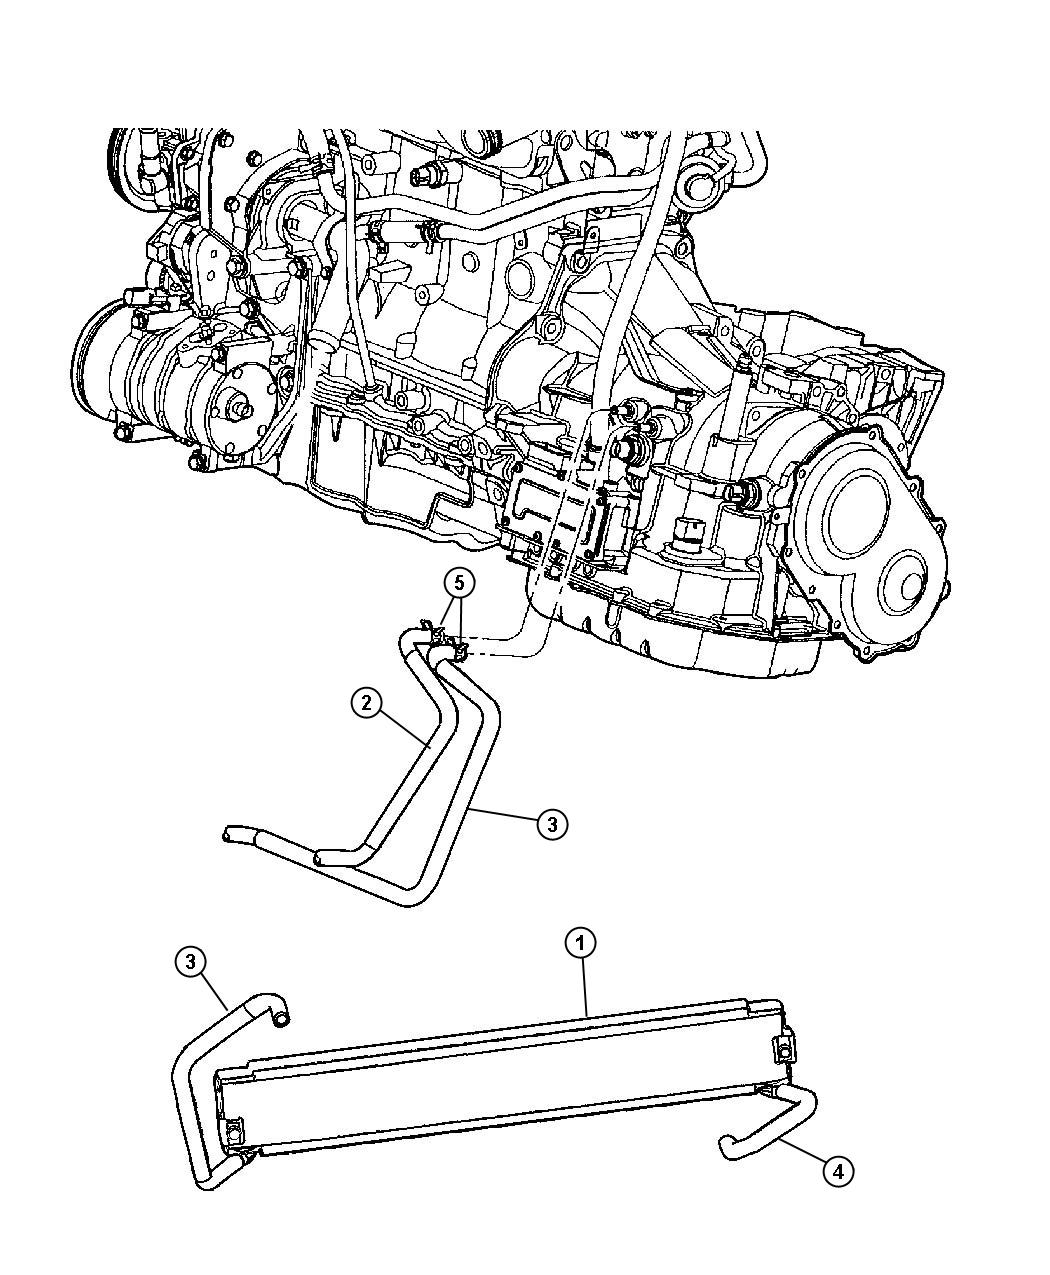 2001 chrysler pt cruiser engine diagram similiar pt